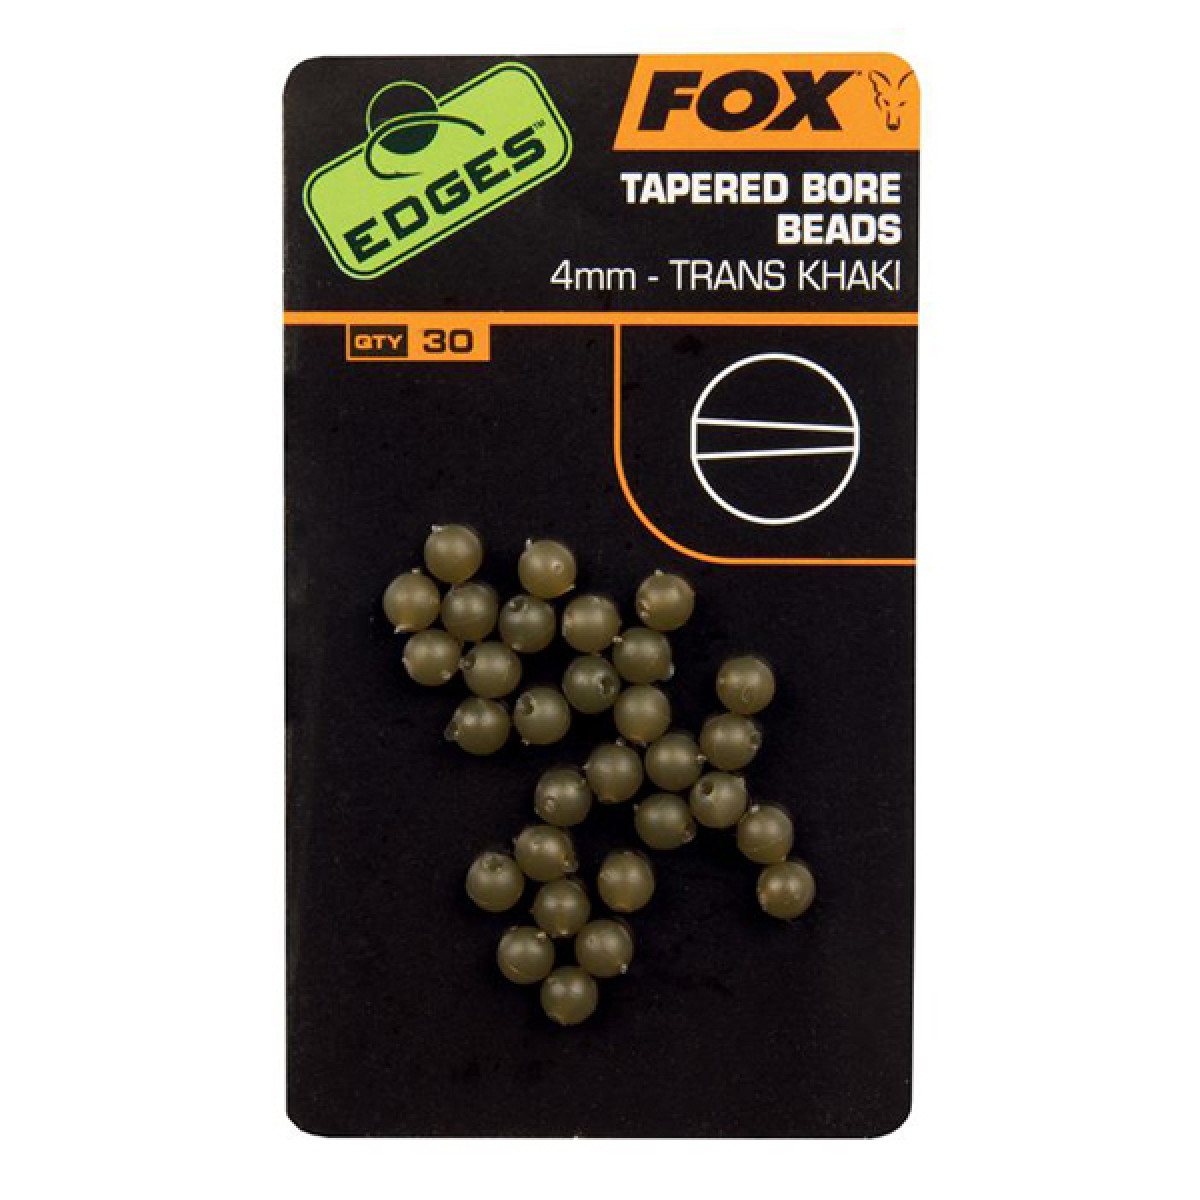 Tapered Bore Beads